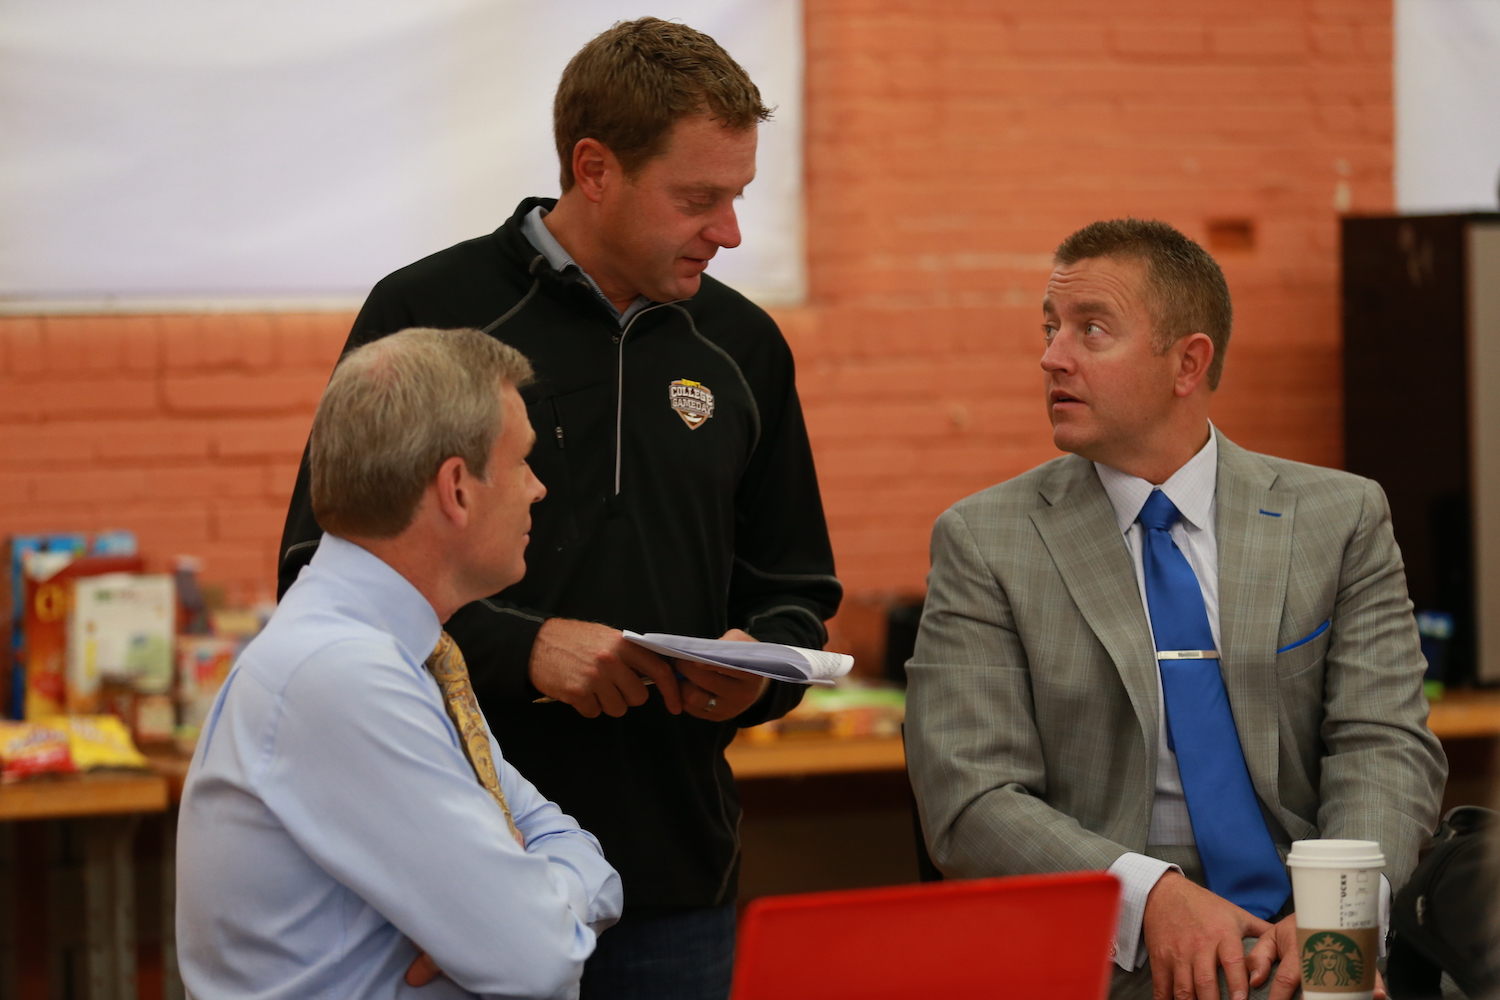 Clemson, SC - October 3, 2015 - Memorial Stadium: Tom Rinaldi, Lee Fitting and Kirk Herbstreit in the production meeting for College GameDay Built by the Home Depot image: allen key / espn images